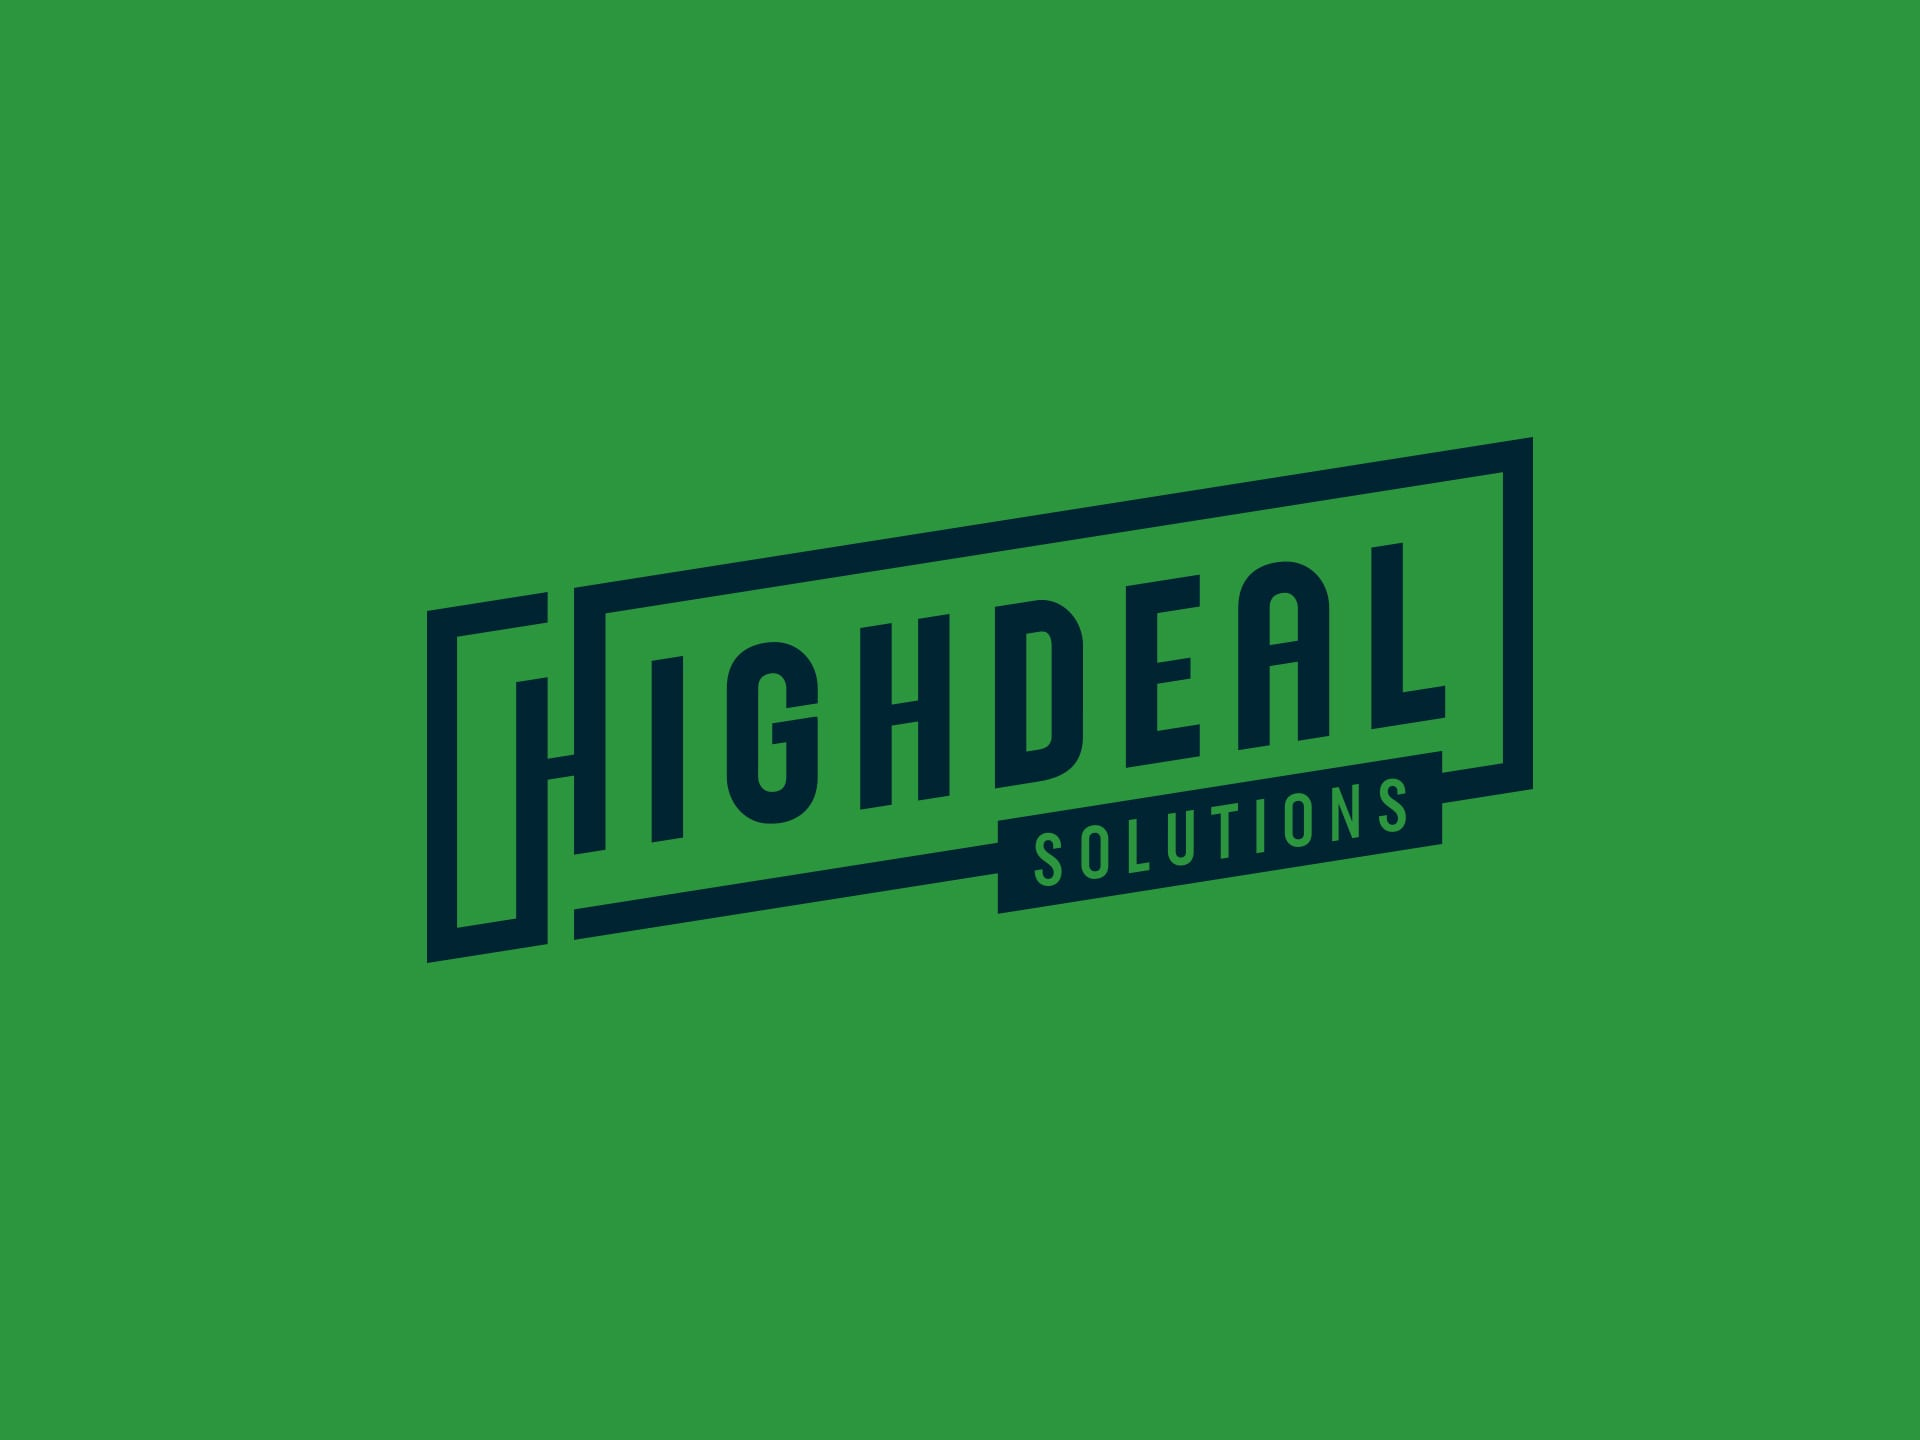 Y5 Creative Case Studies Emerging Markets Highdeal Solutions Logo 2